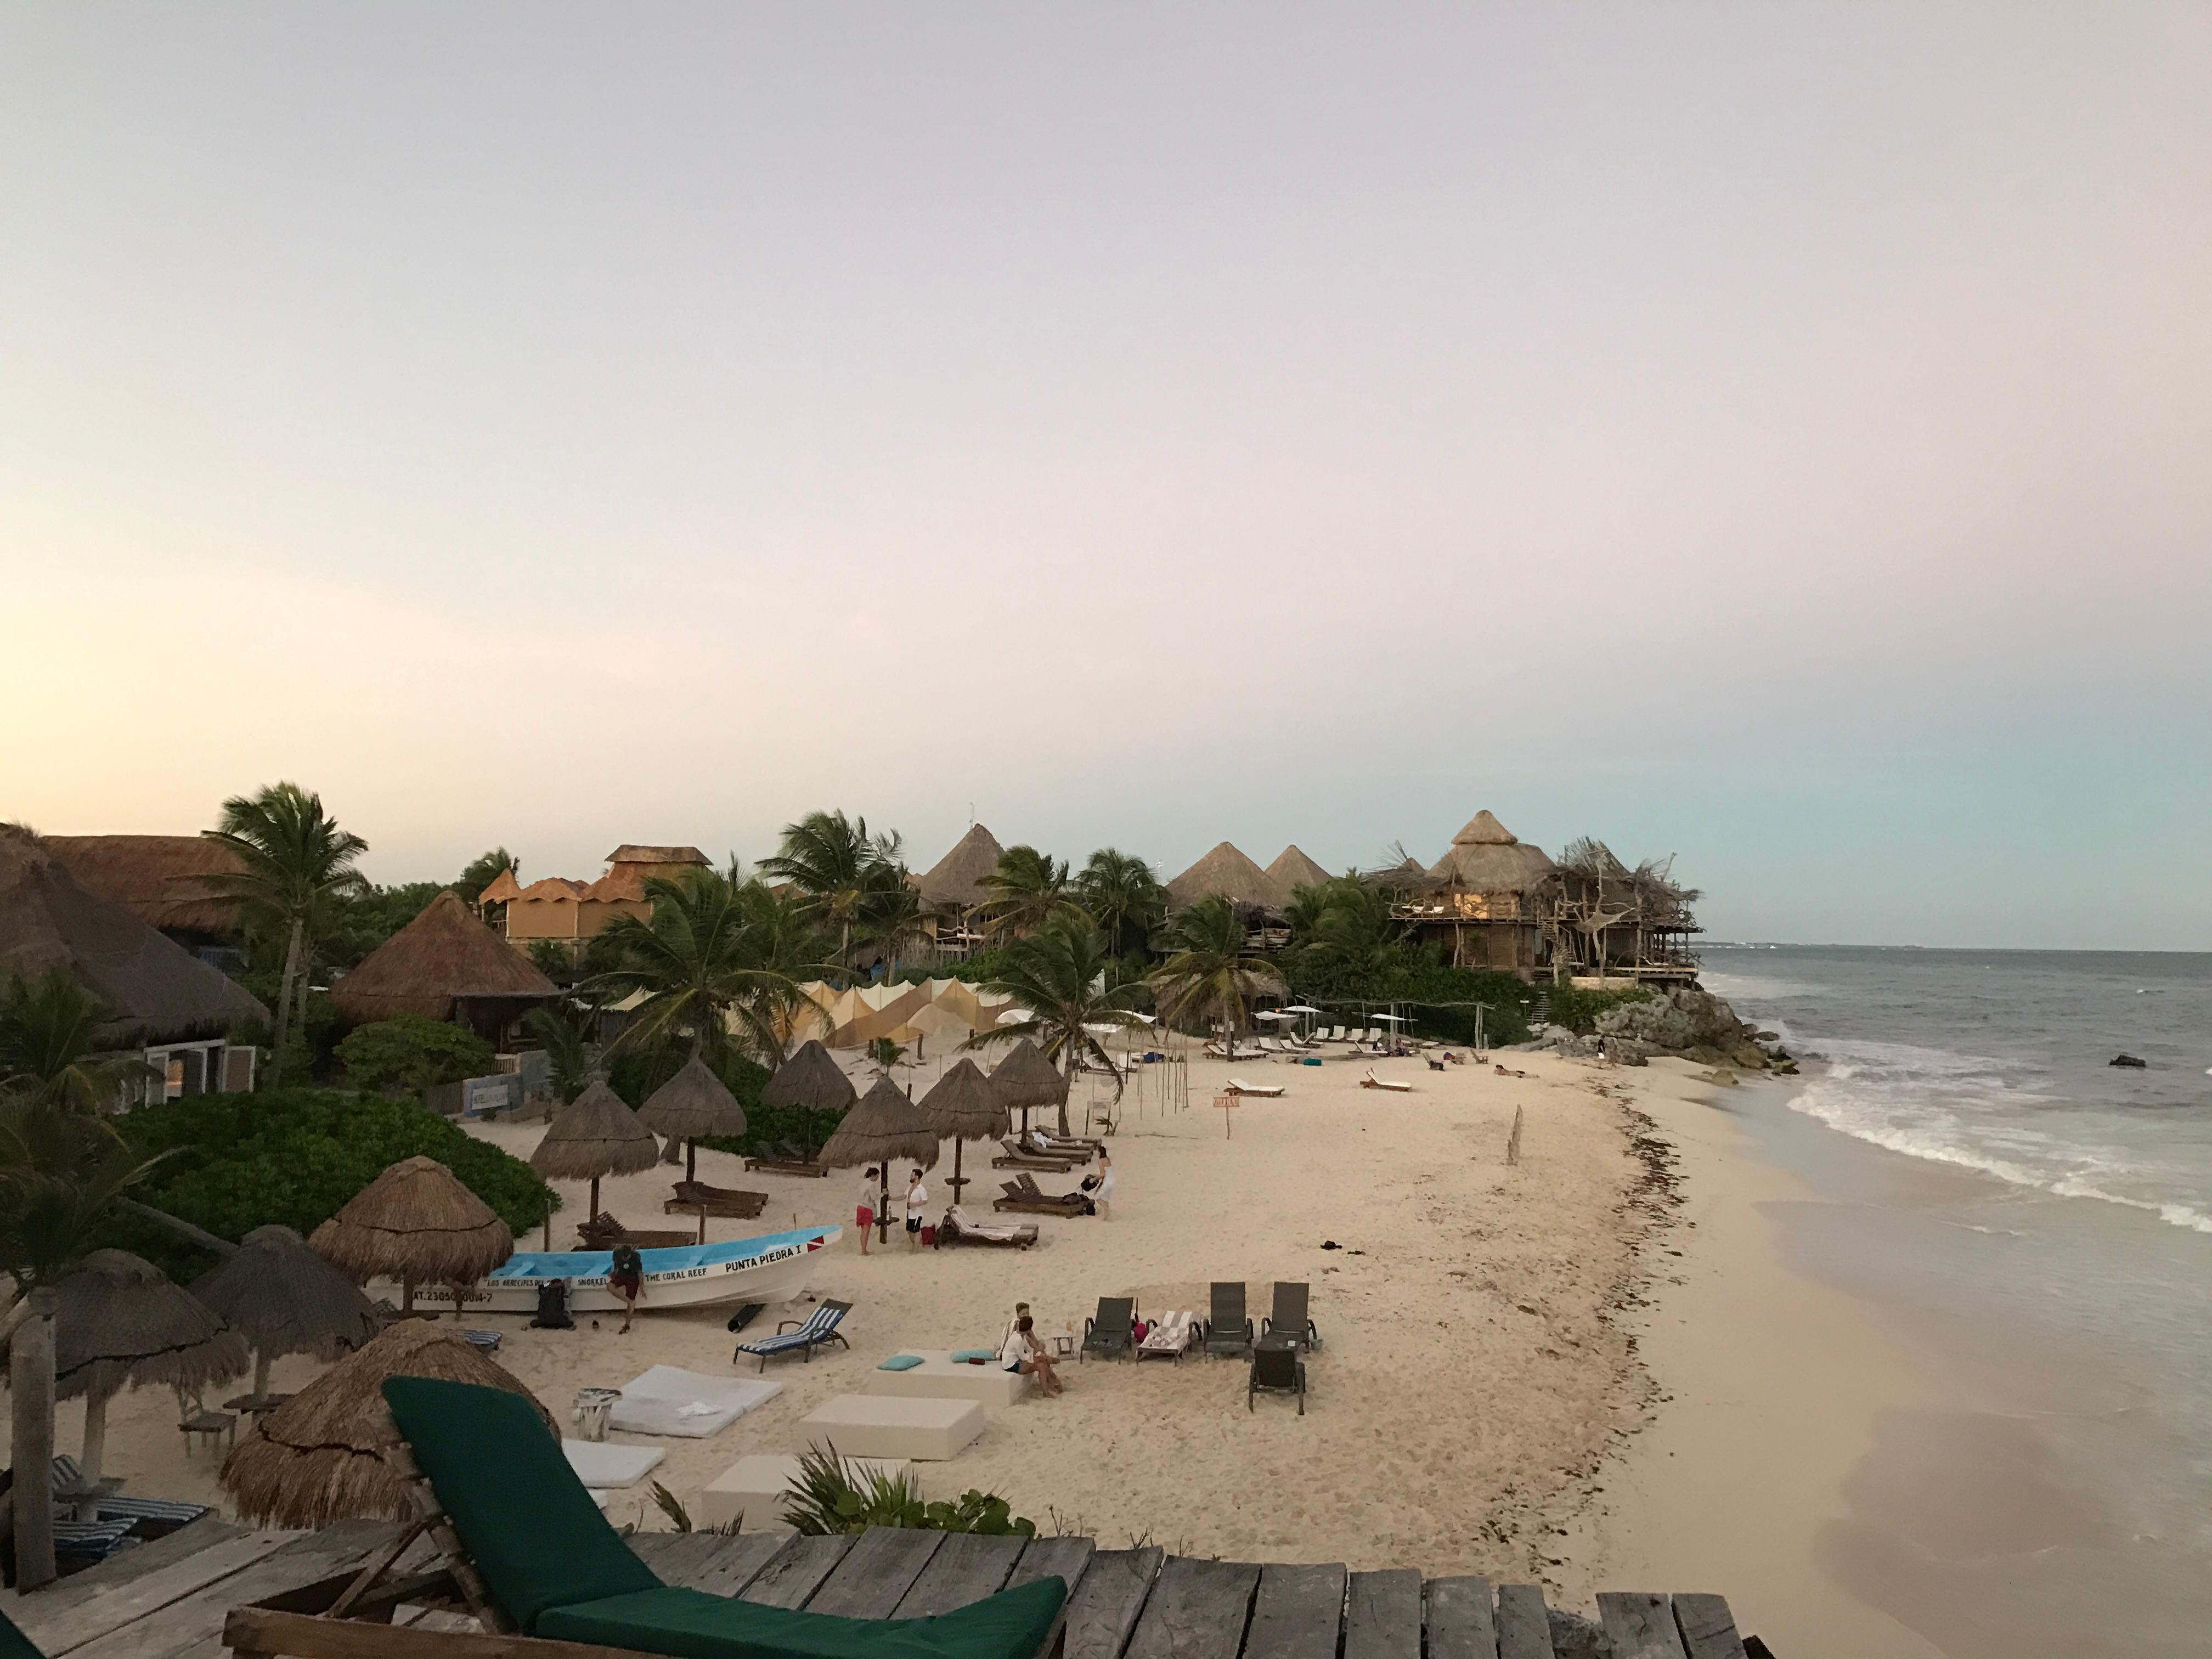 Pic is of stretch of beach. Hotel in front of tiki beach chairs